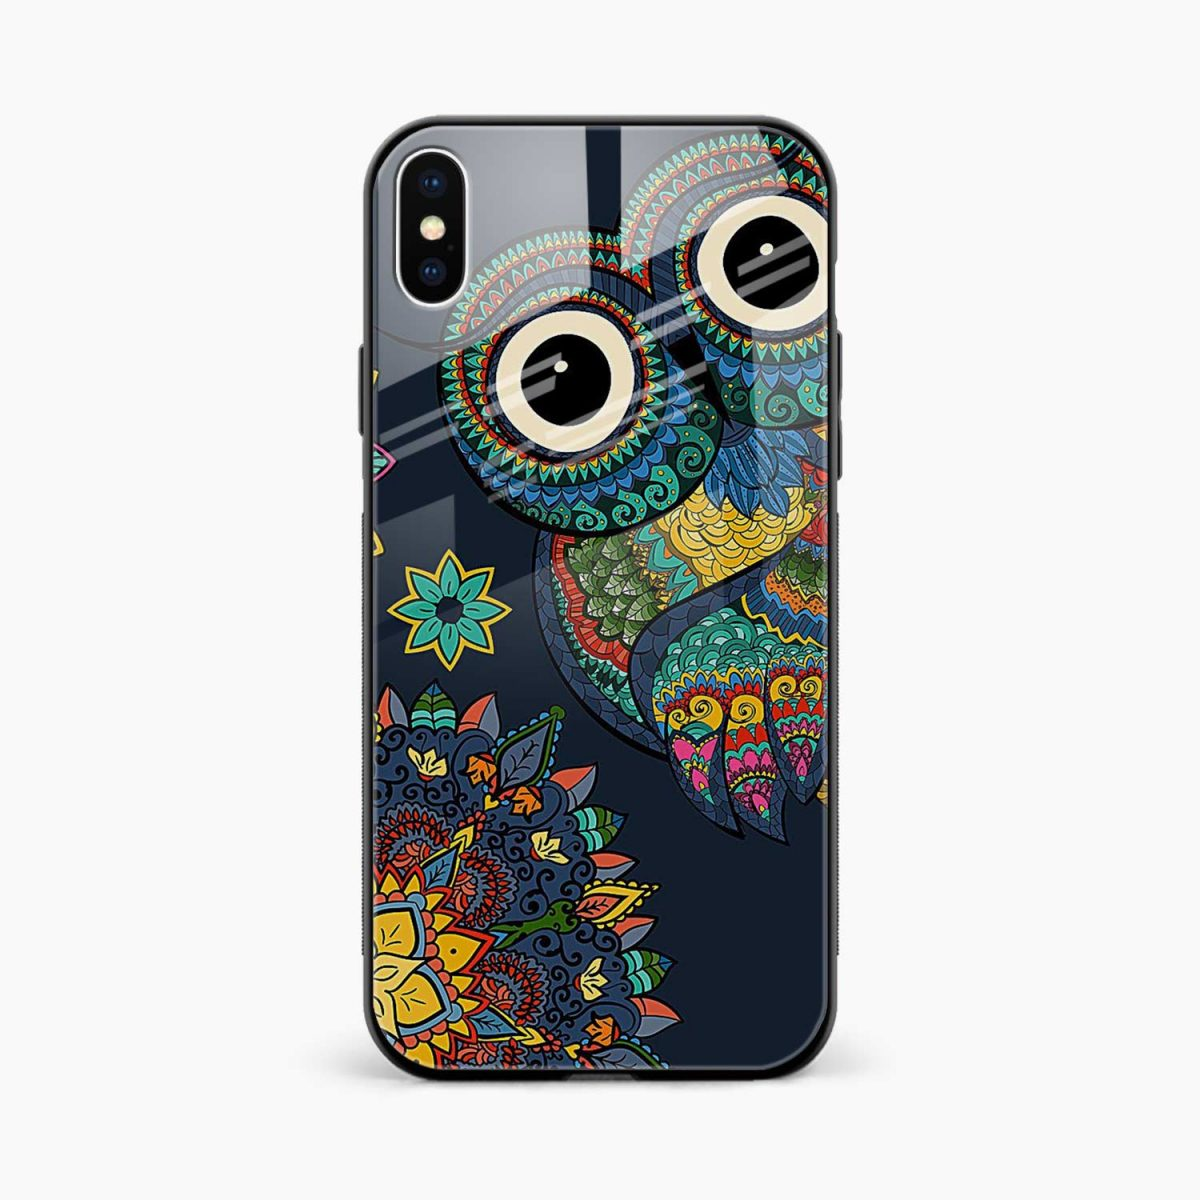 owl eyes front view apple iphone x xs max back cover